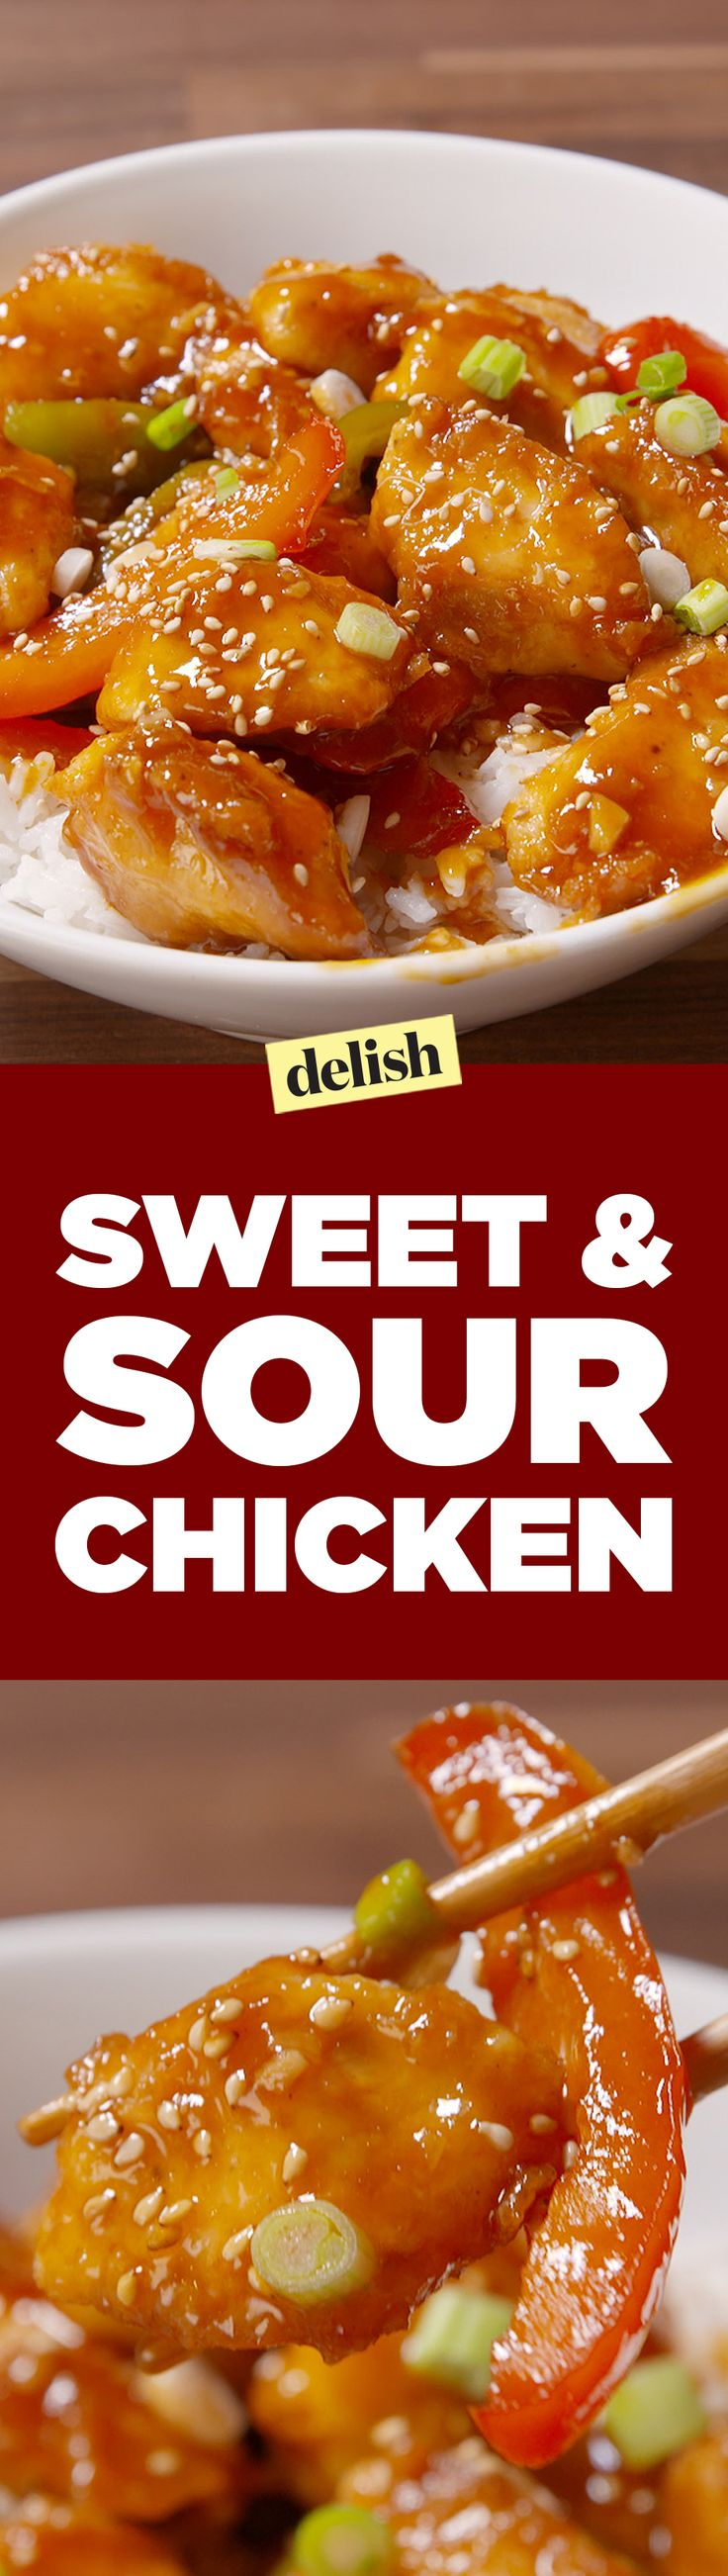 This sweet & sour chicken will trick your guests into thinking you ordered takeout. Get the recipe on Delish.com.